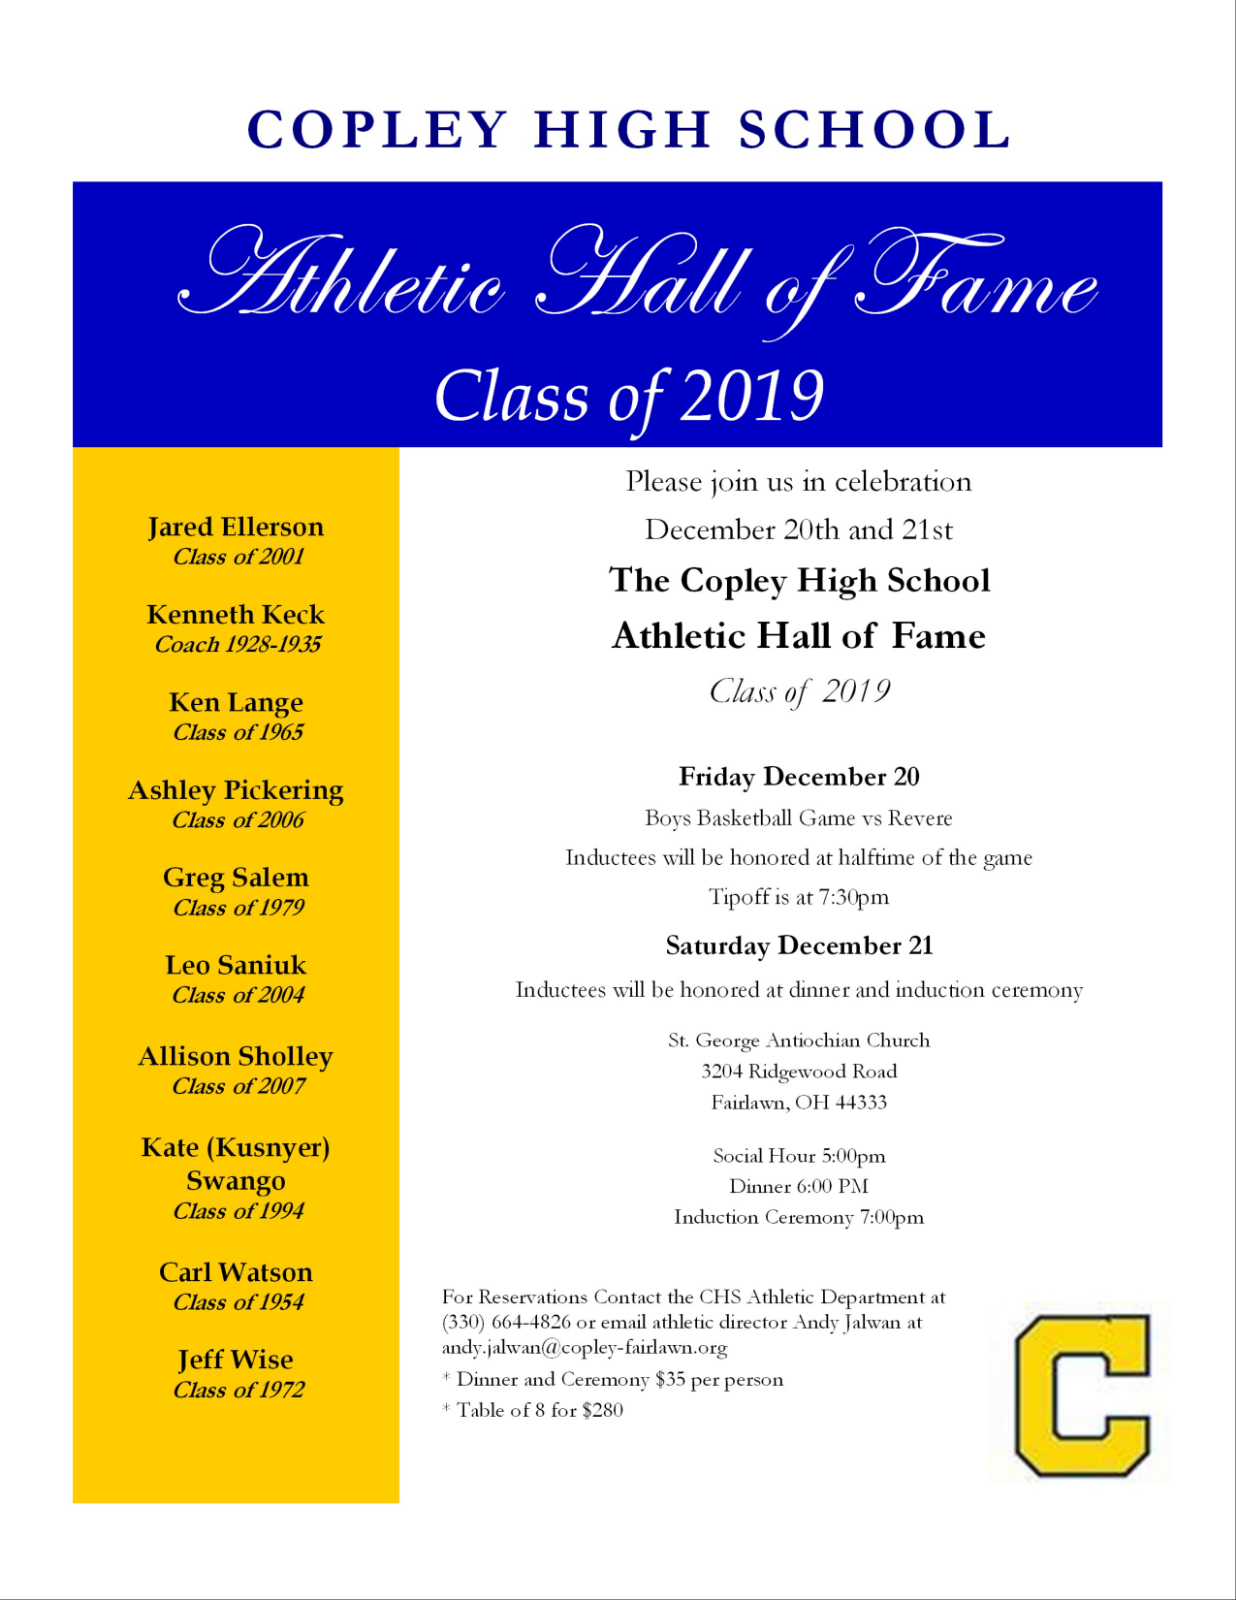 Hall of Fame Class of 2019 Announced